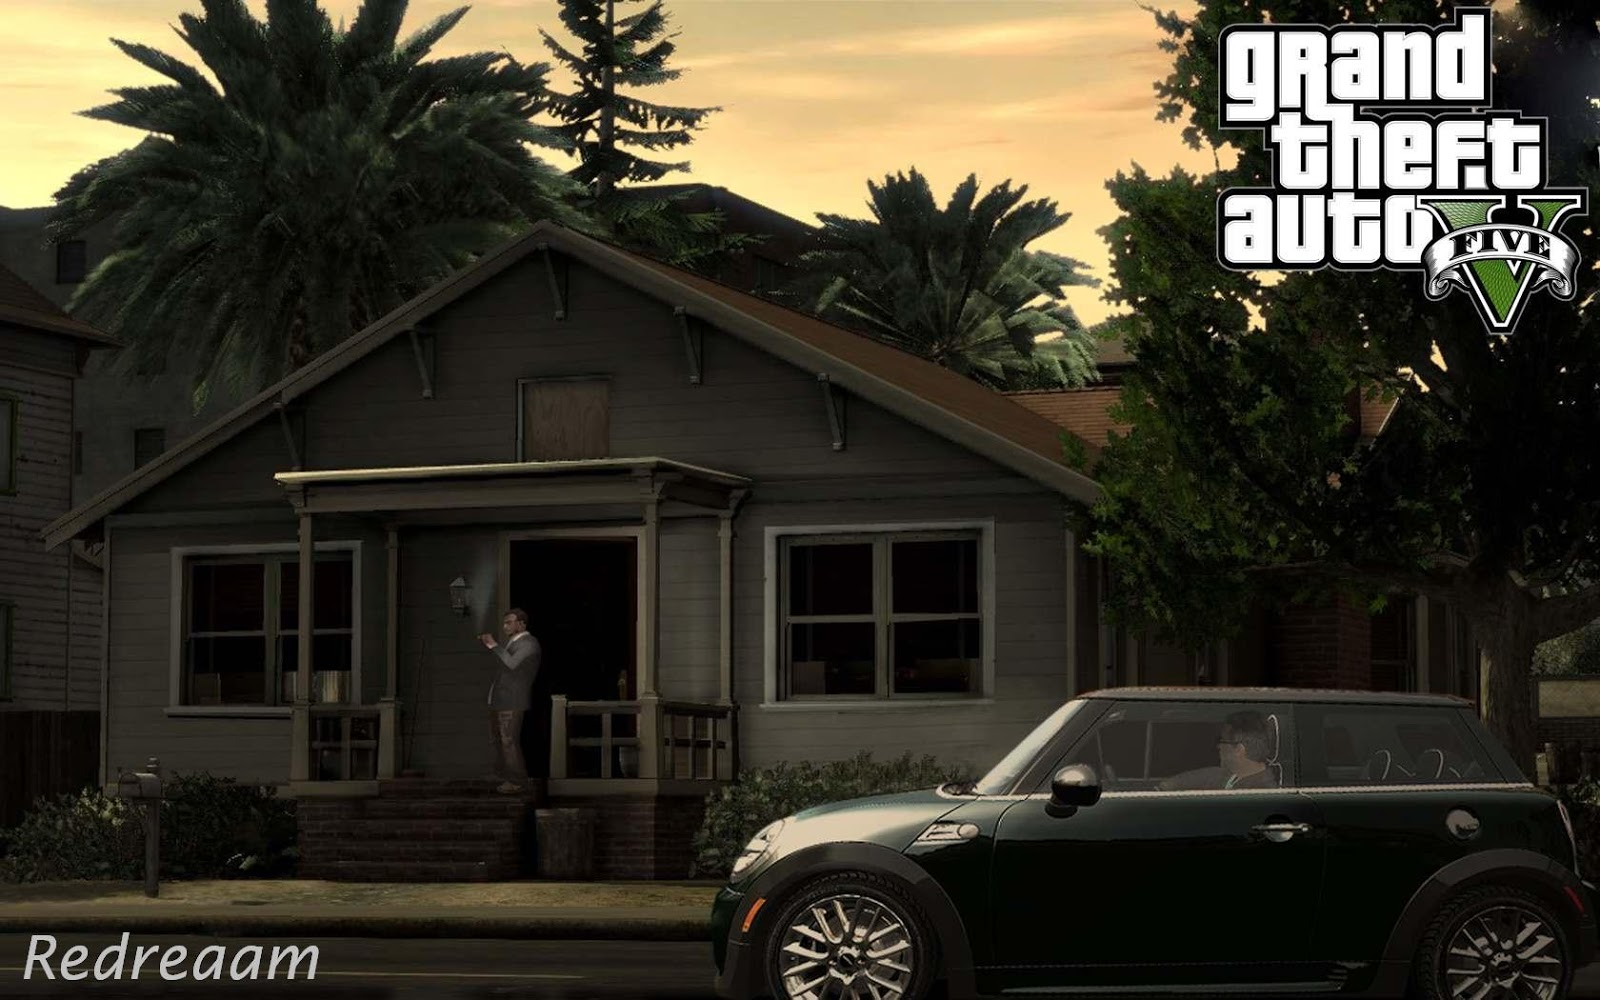 ns separamos 5 wallpapers incriveis do GTA V confira 1600x1000